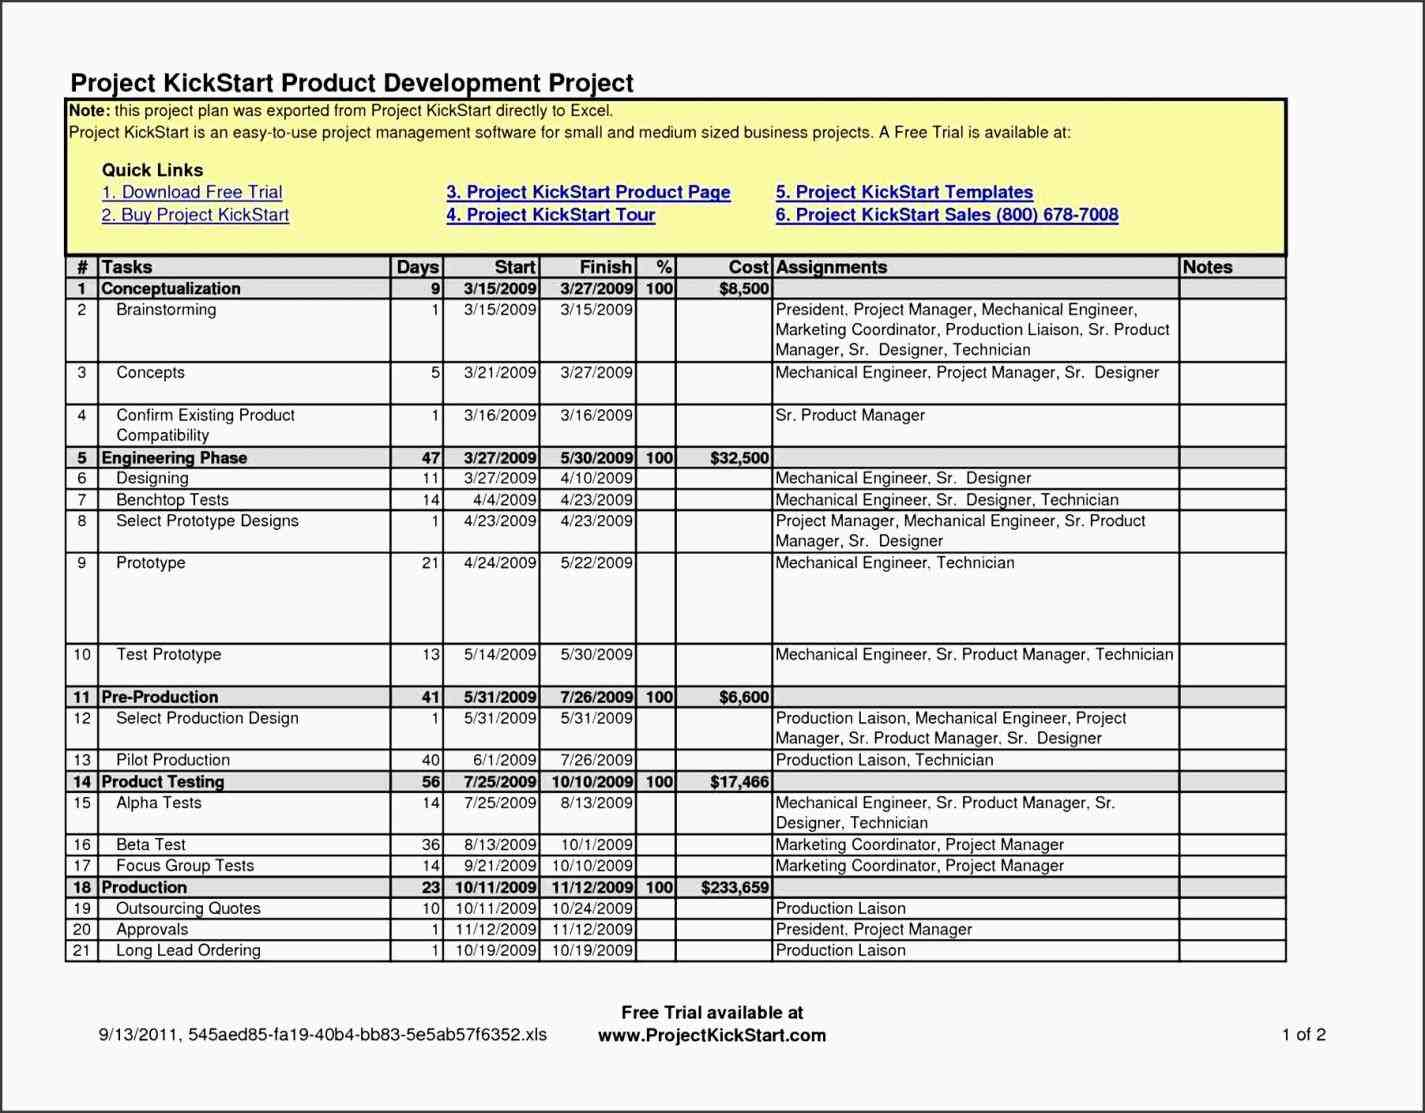 Project plan template excel gantt sample templates sample templates chart template for excel excelindorhexcelindocom day schedule in overview youtuberhyoutubecom day project plan template excel gantt maxwellsz